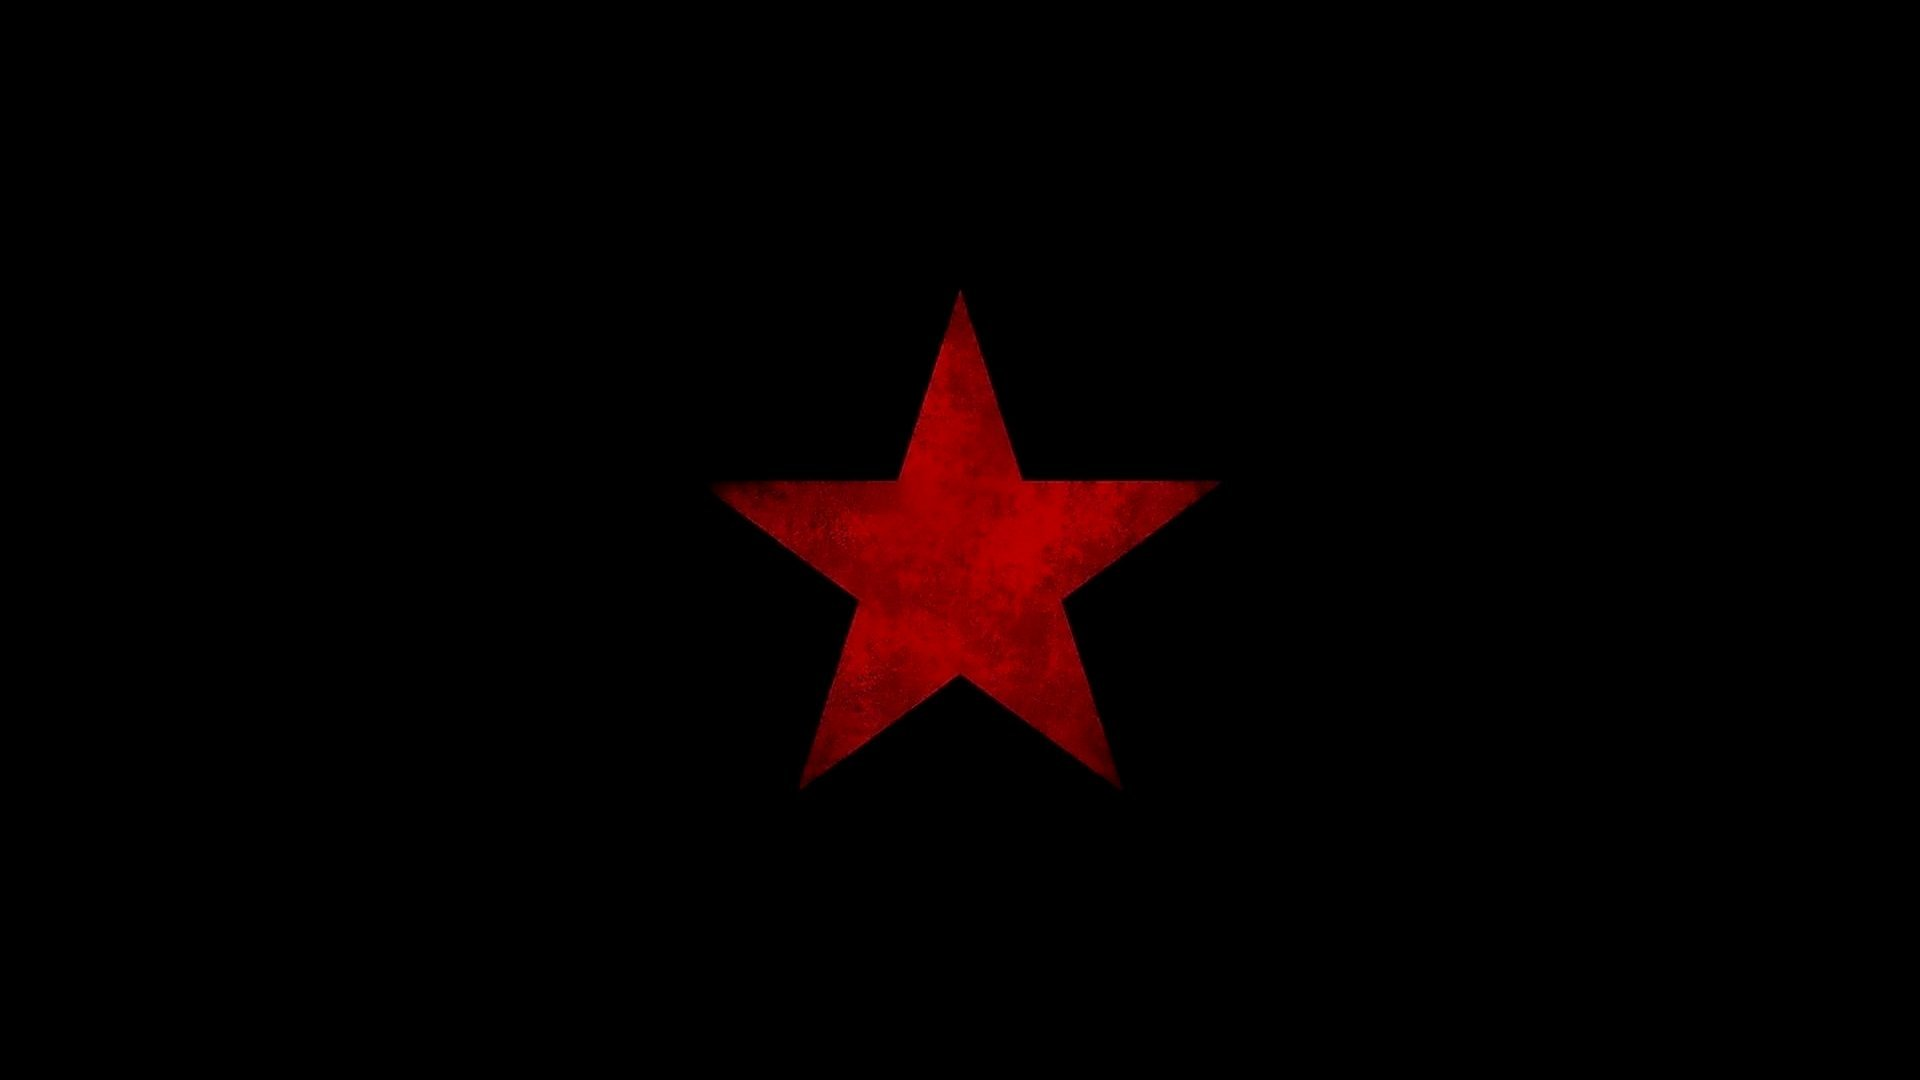 red star none wallpaper for misan™ * by (edited)